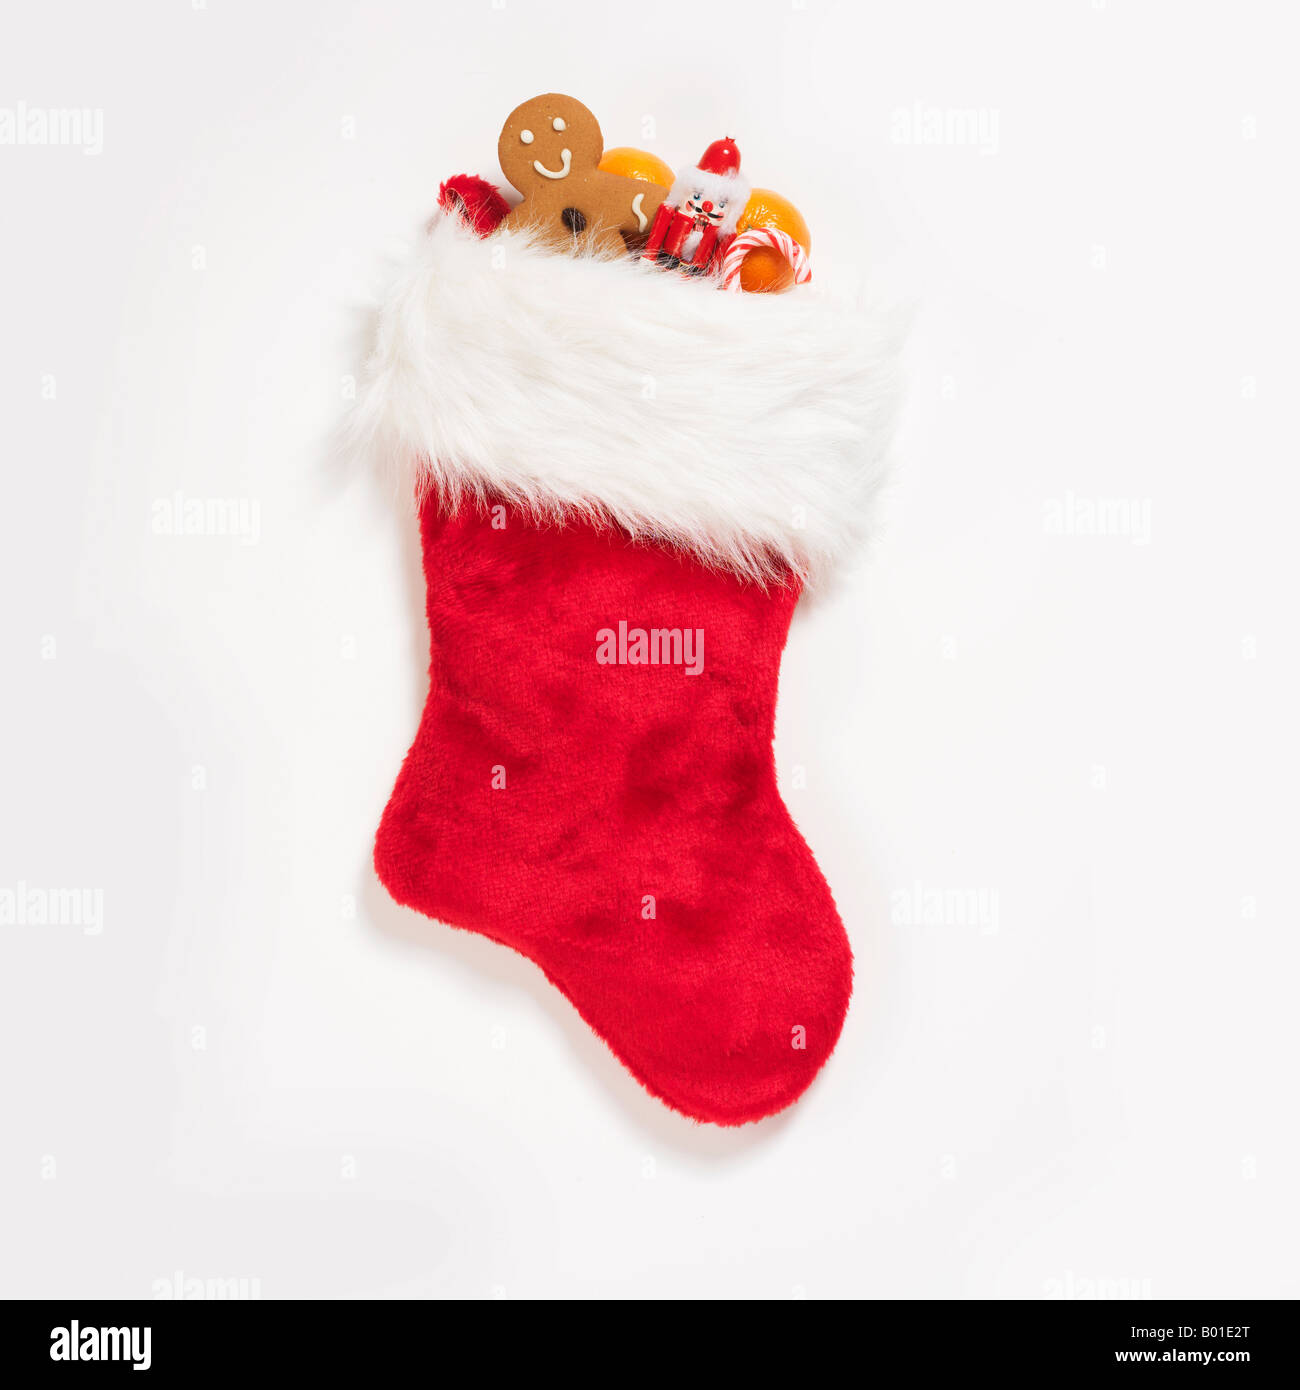 Christmas stocking stuffed with assorted treats and sweets on white background - Stock Image